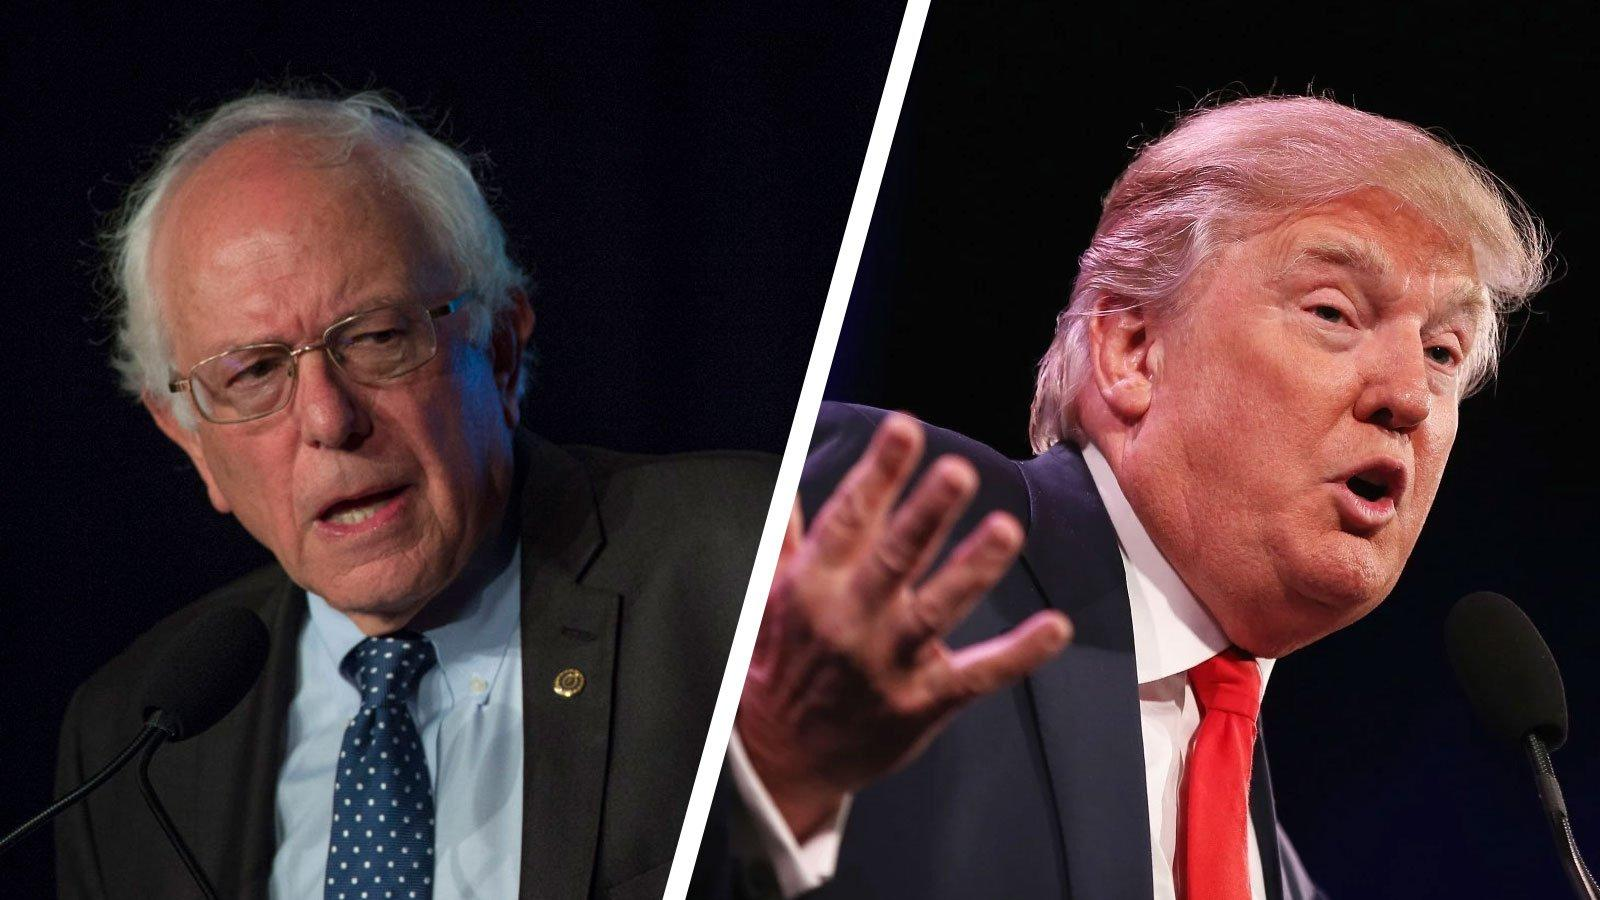 Are Trump and Sanders Really Going to Debate?